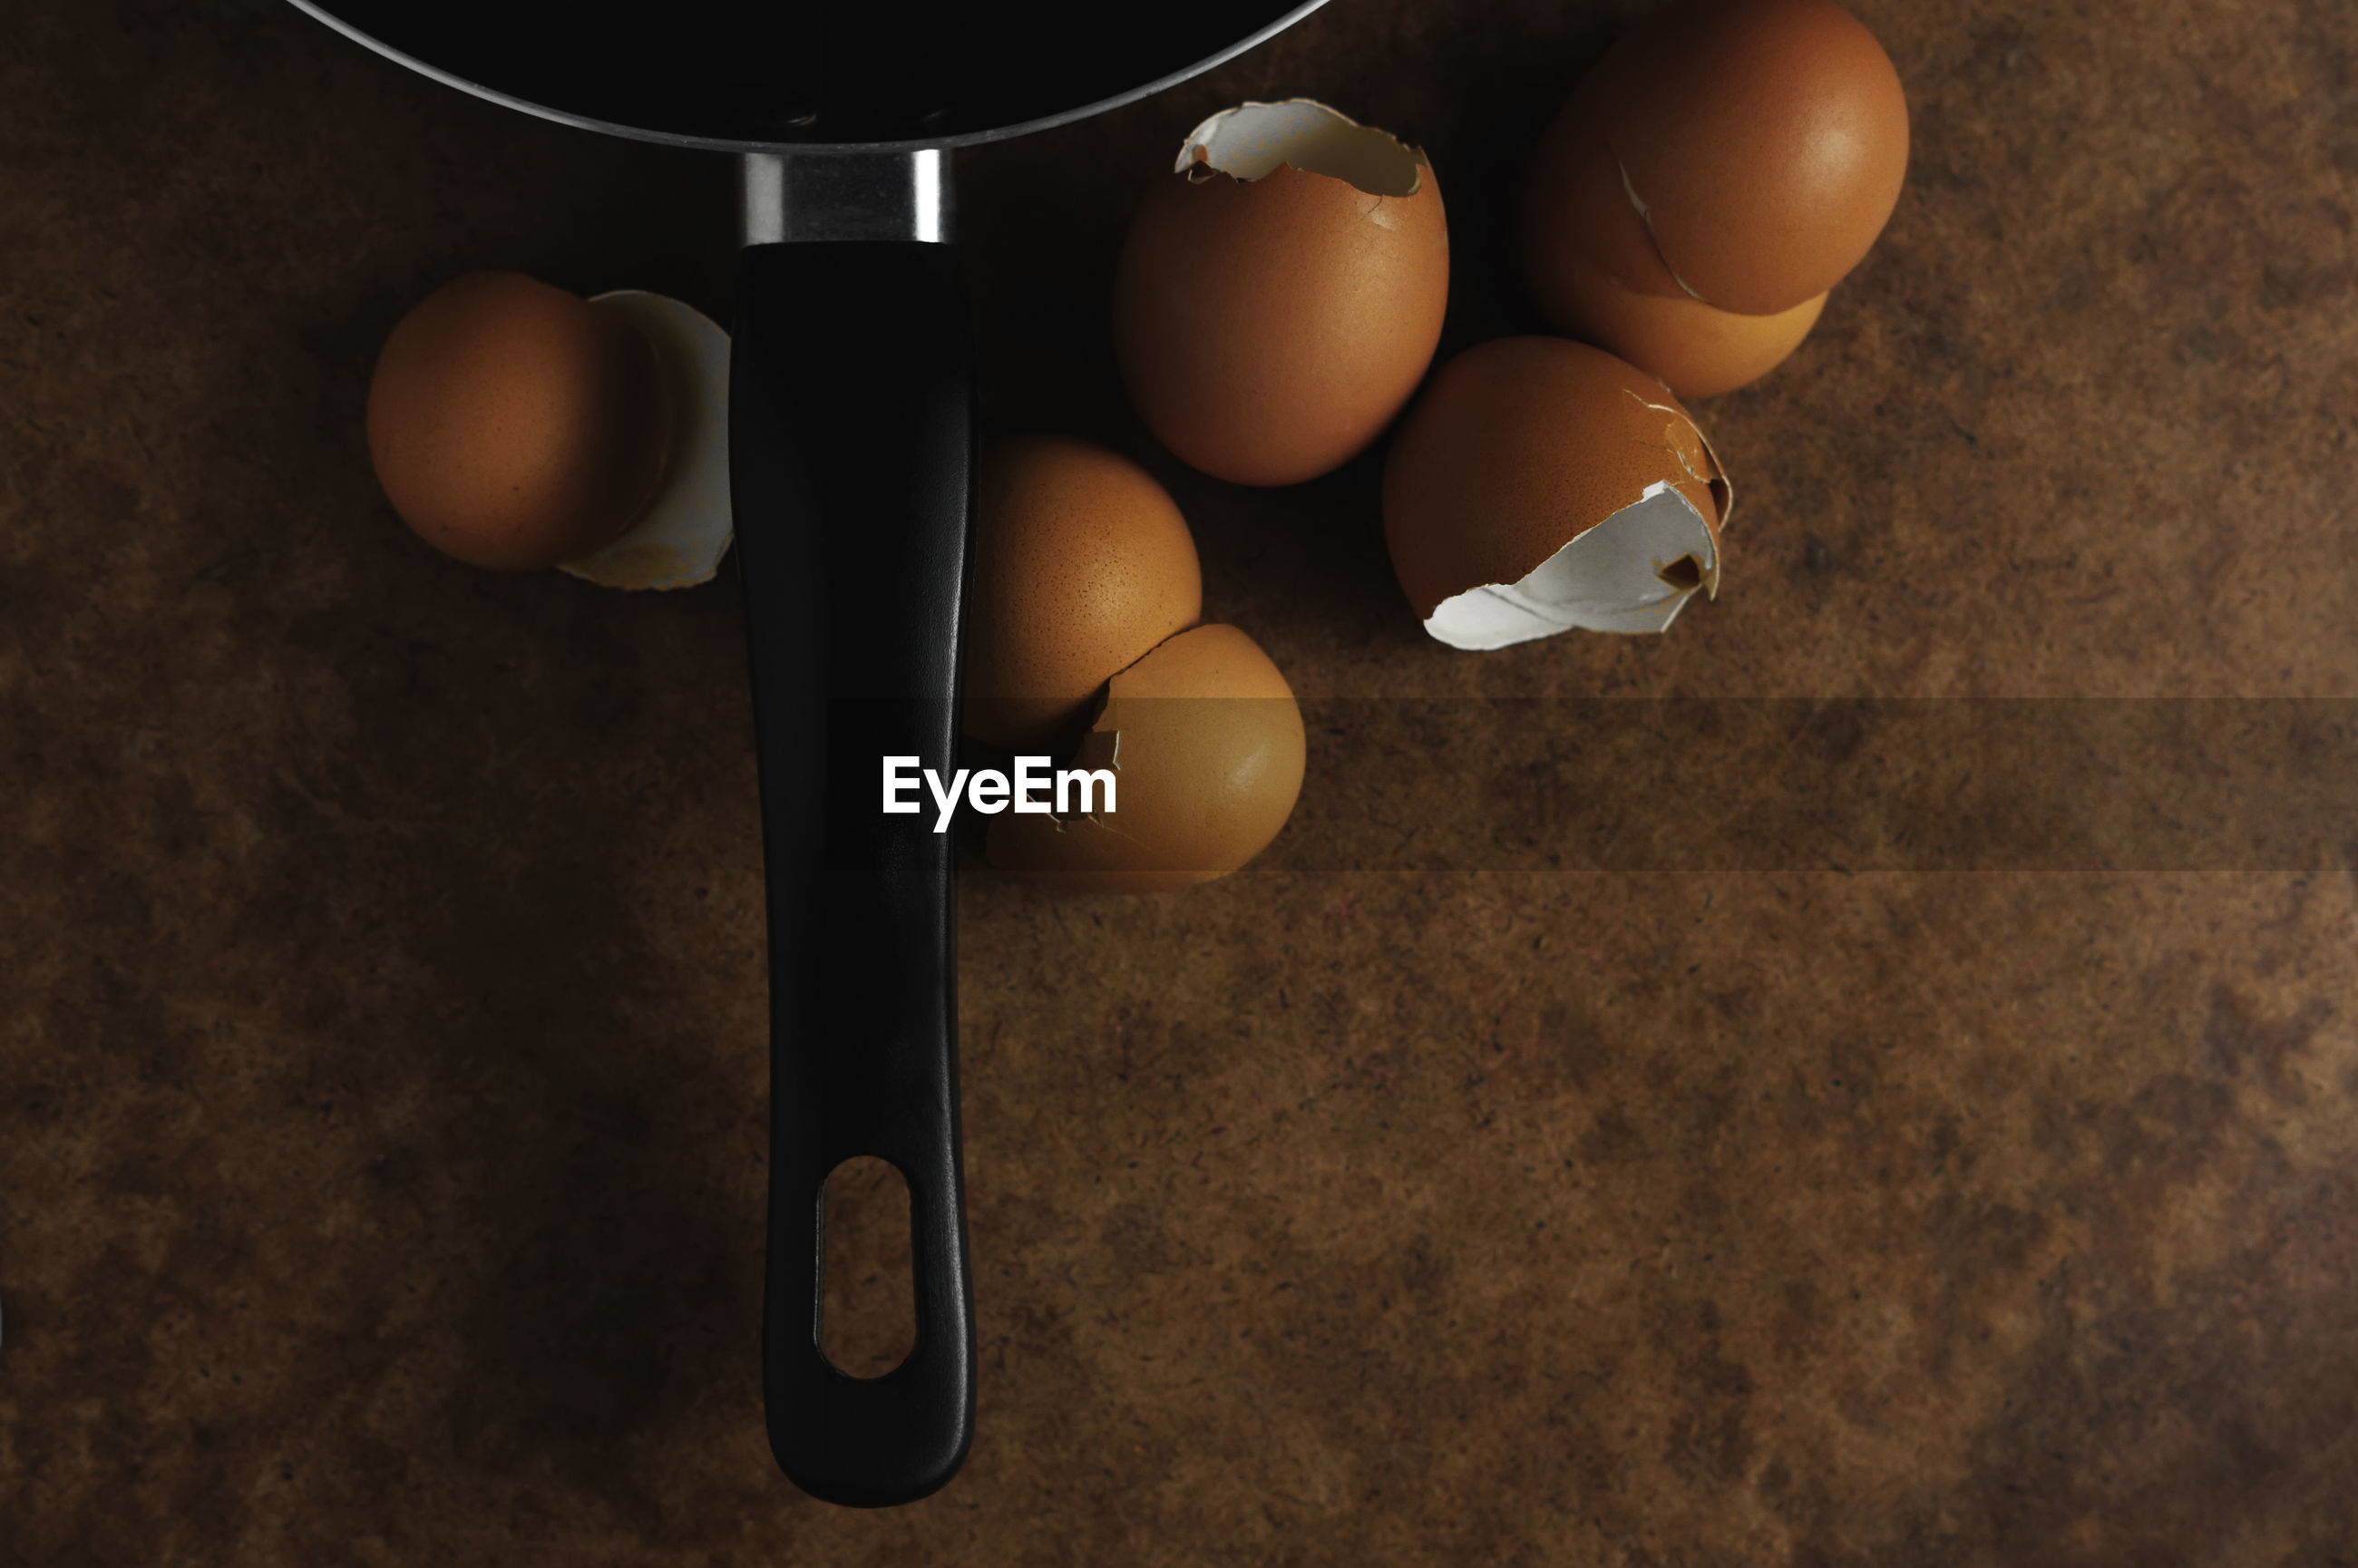 High angle view of cooking pan with eggshells in kitchen on wooden table